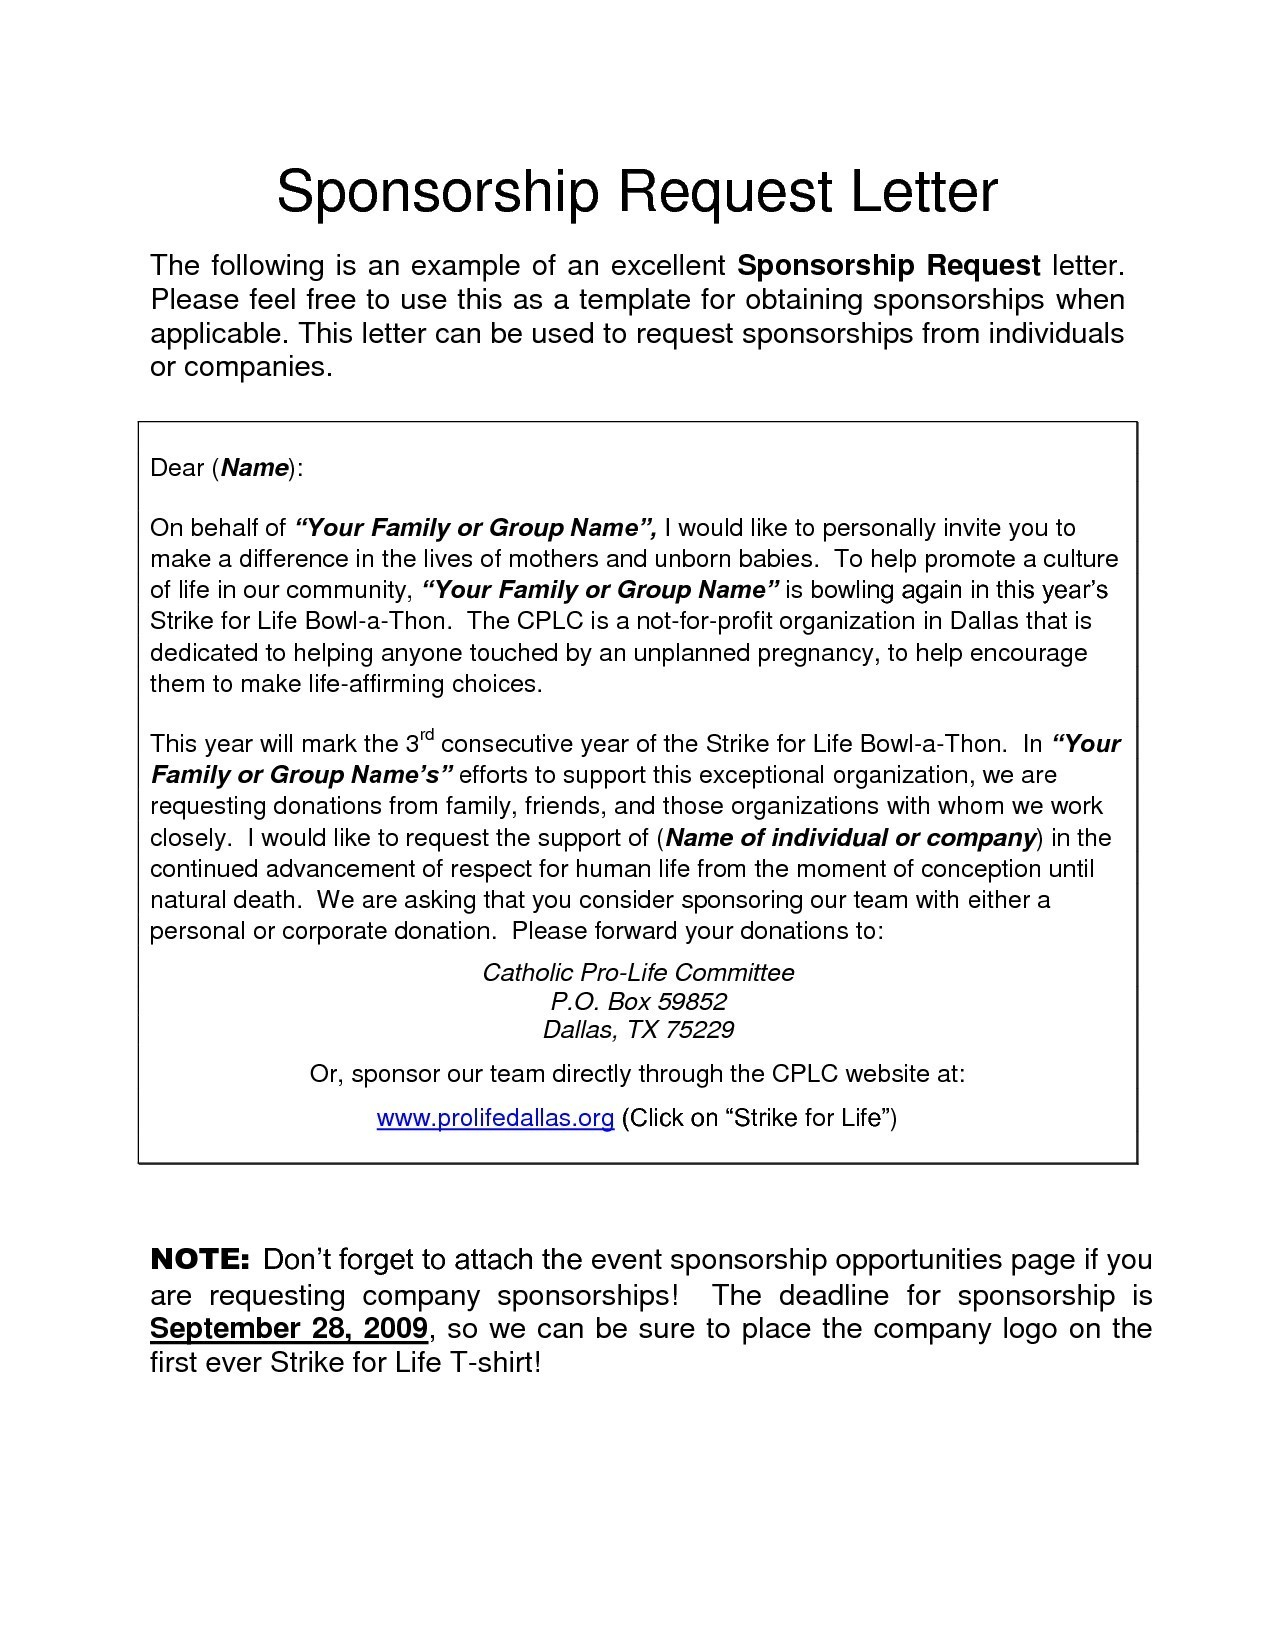 Sponsorship Proposal Letter Template - Sample Certificate Beauty Pageant Copy Free Sponsorship Letter